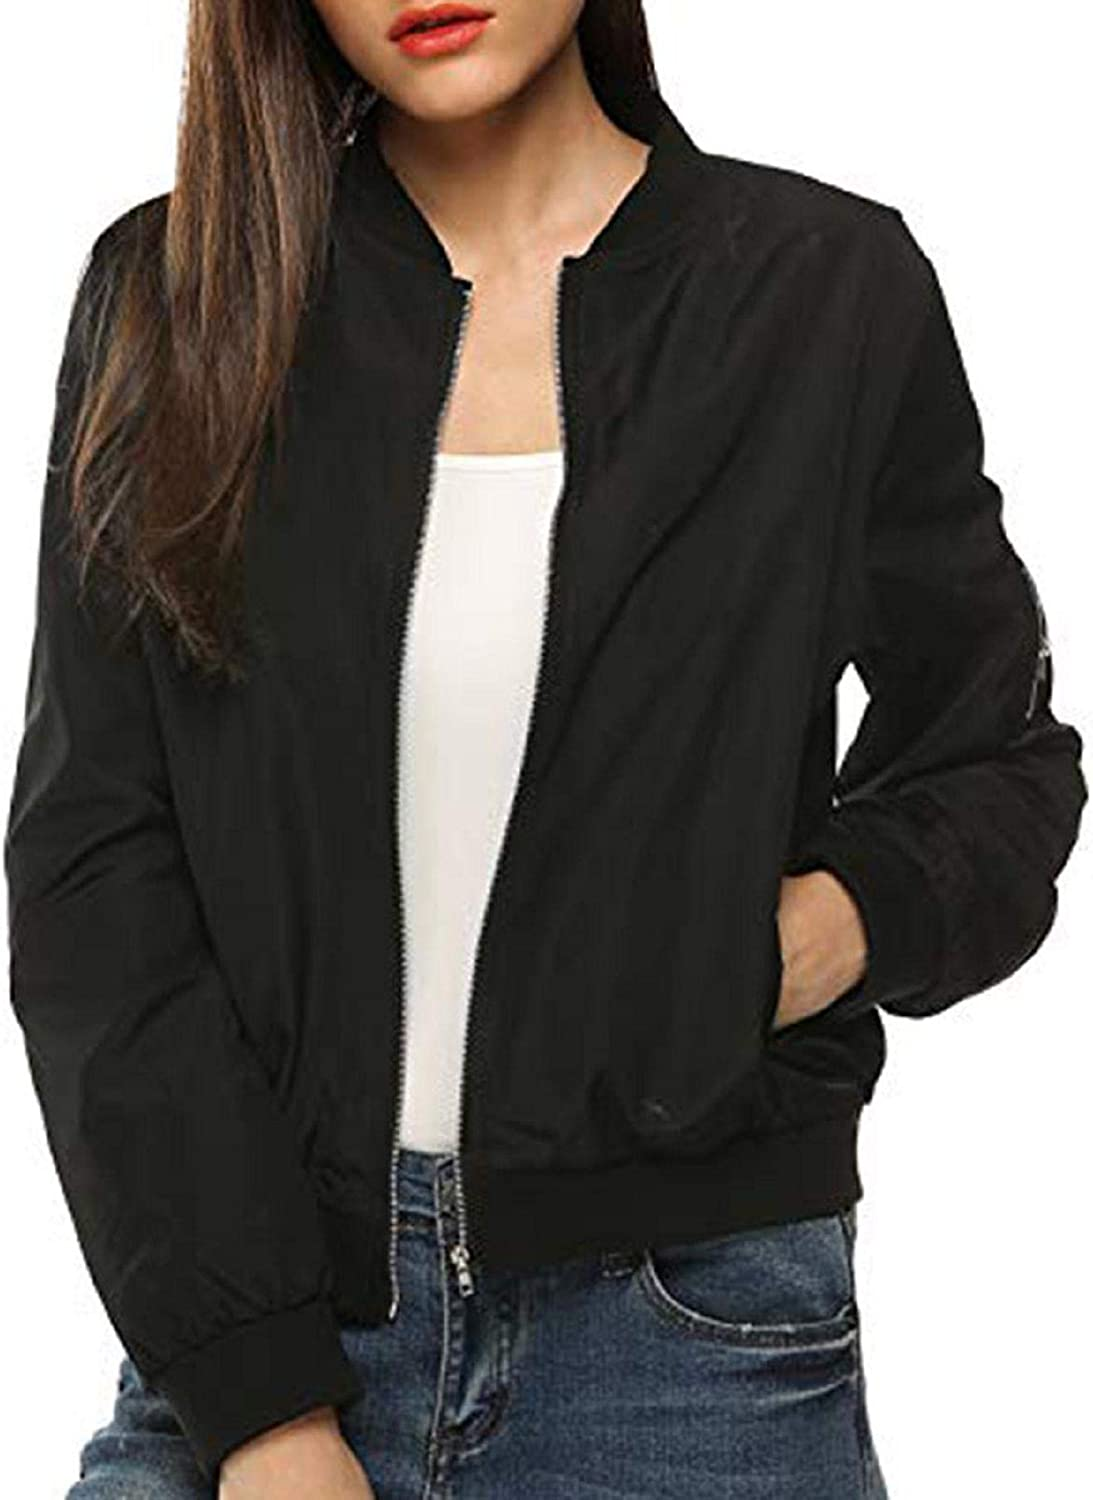 Women's Classic Bomber Jackets,Full-Zip Long Sleeve Quilted Jacket Coat Casual Lightweight Coat